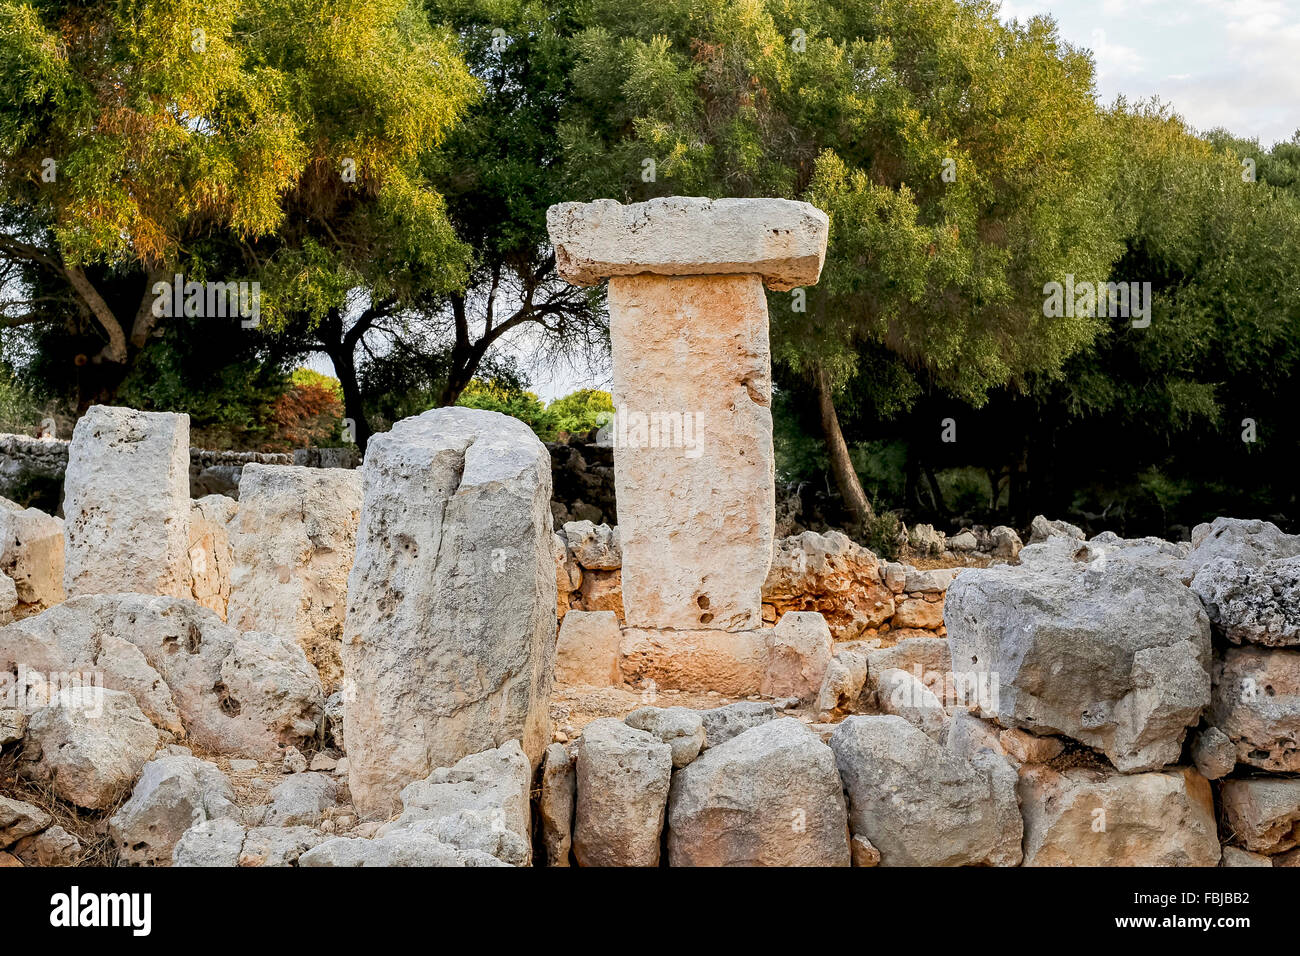 Talayot, prehistorical, cult site near Binisafullet, south coast of the island Menorca, the Balearic Islands, Spain - Stock Image